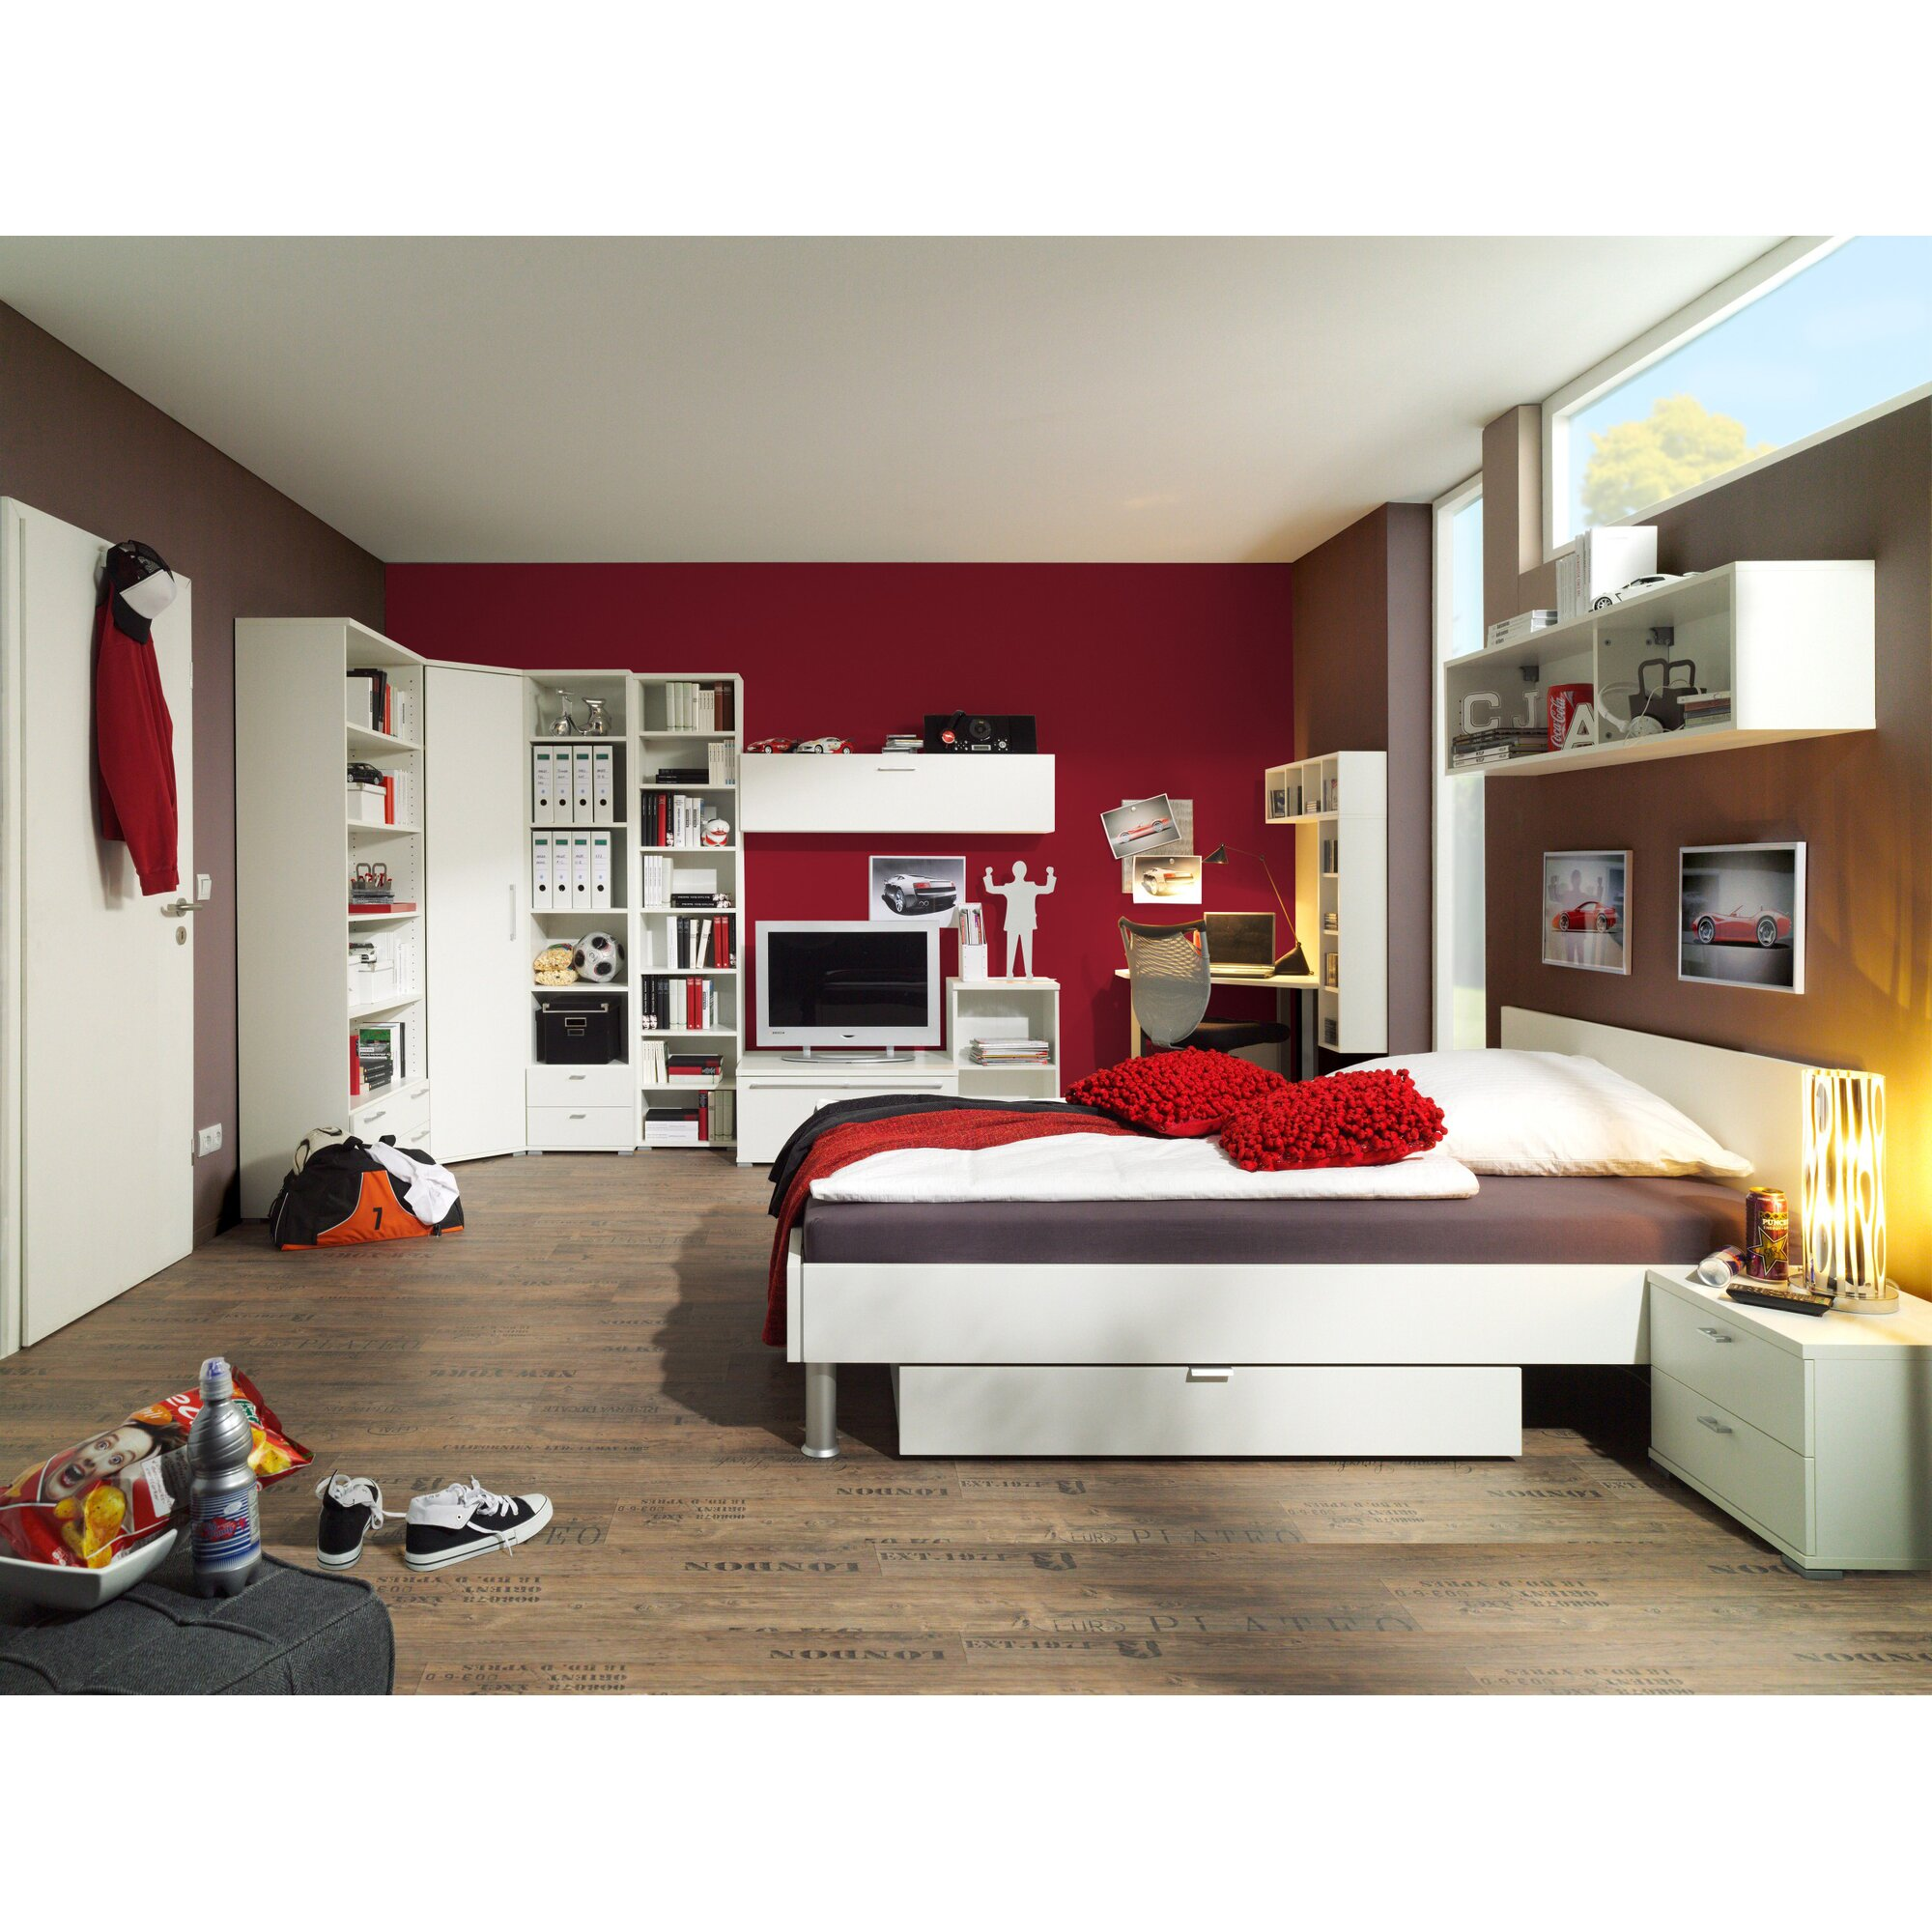 cs schmal 199 cm b cherregal rio art bewertungen. Black Bedroom Furniture Sets. Home Design Ideas